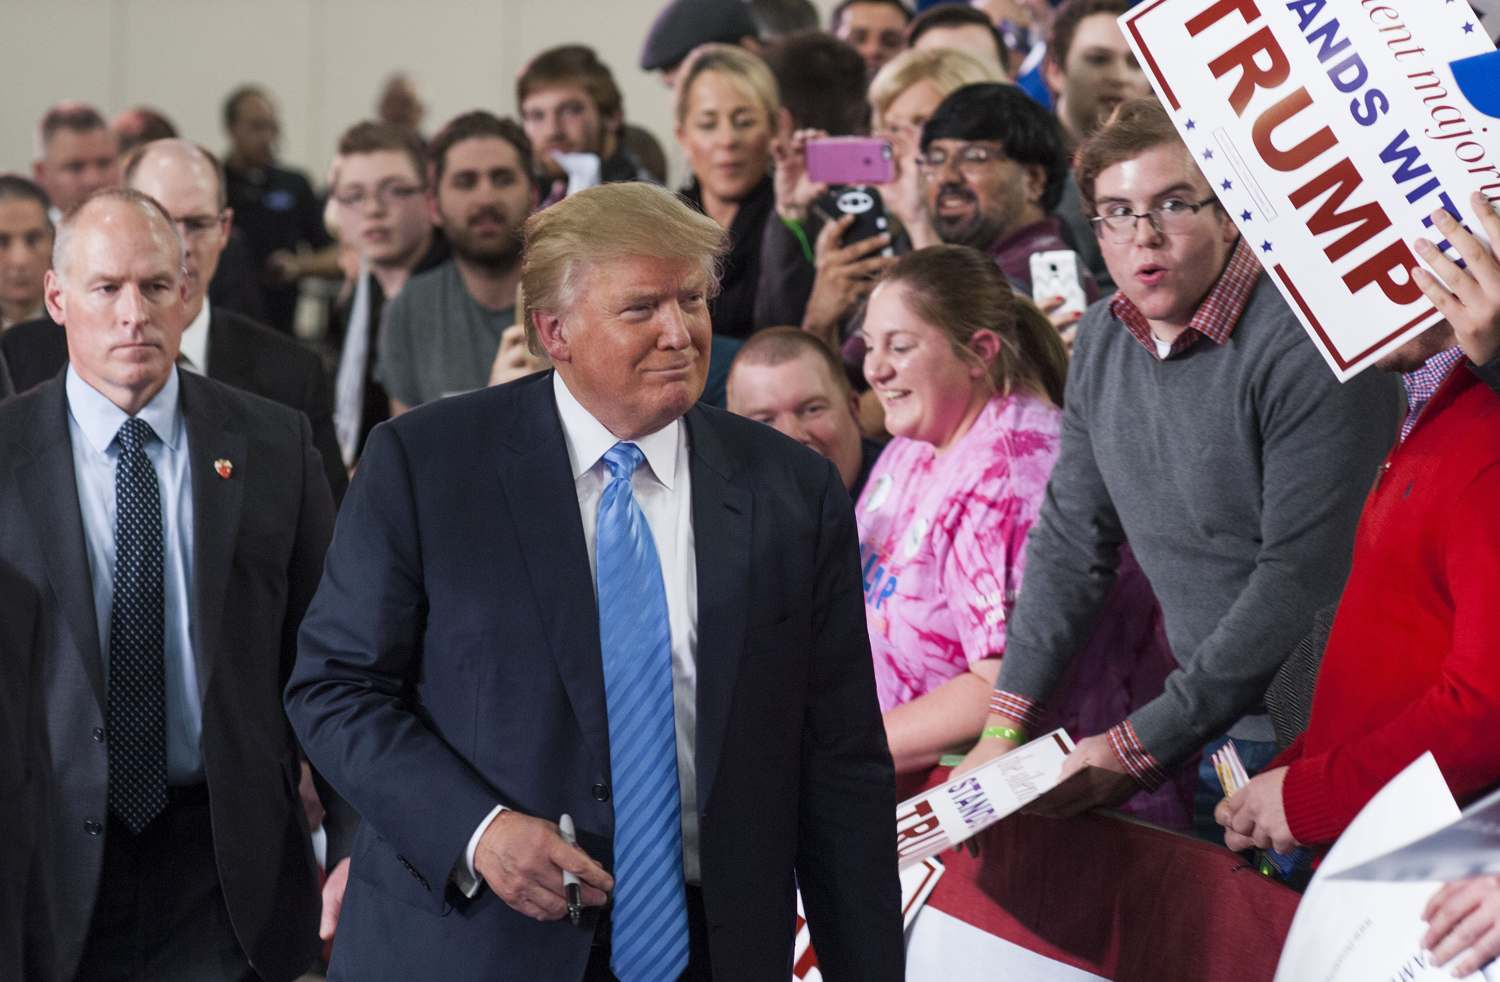 Republican Presidential candidate Donald Trump shakes hands and signs autographs with his supporters after speaking at a campaign rally  Nov. 23, 2015 in Columbus, Ohio. (Photo by Ty Wright/Getty Images)